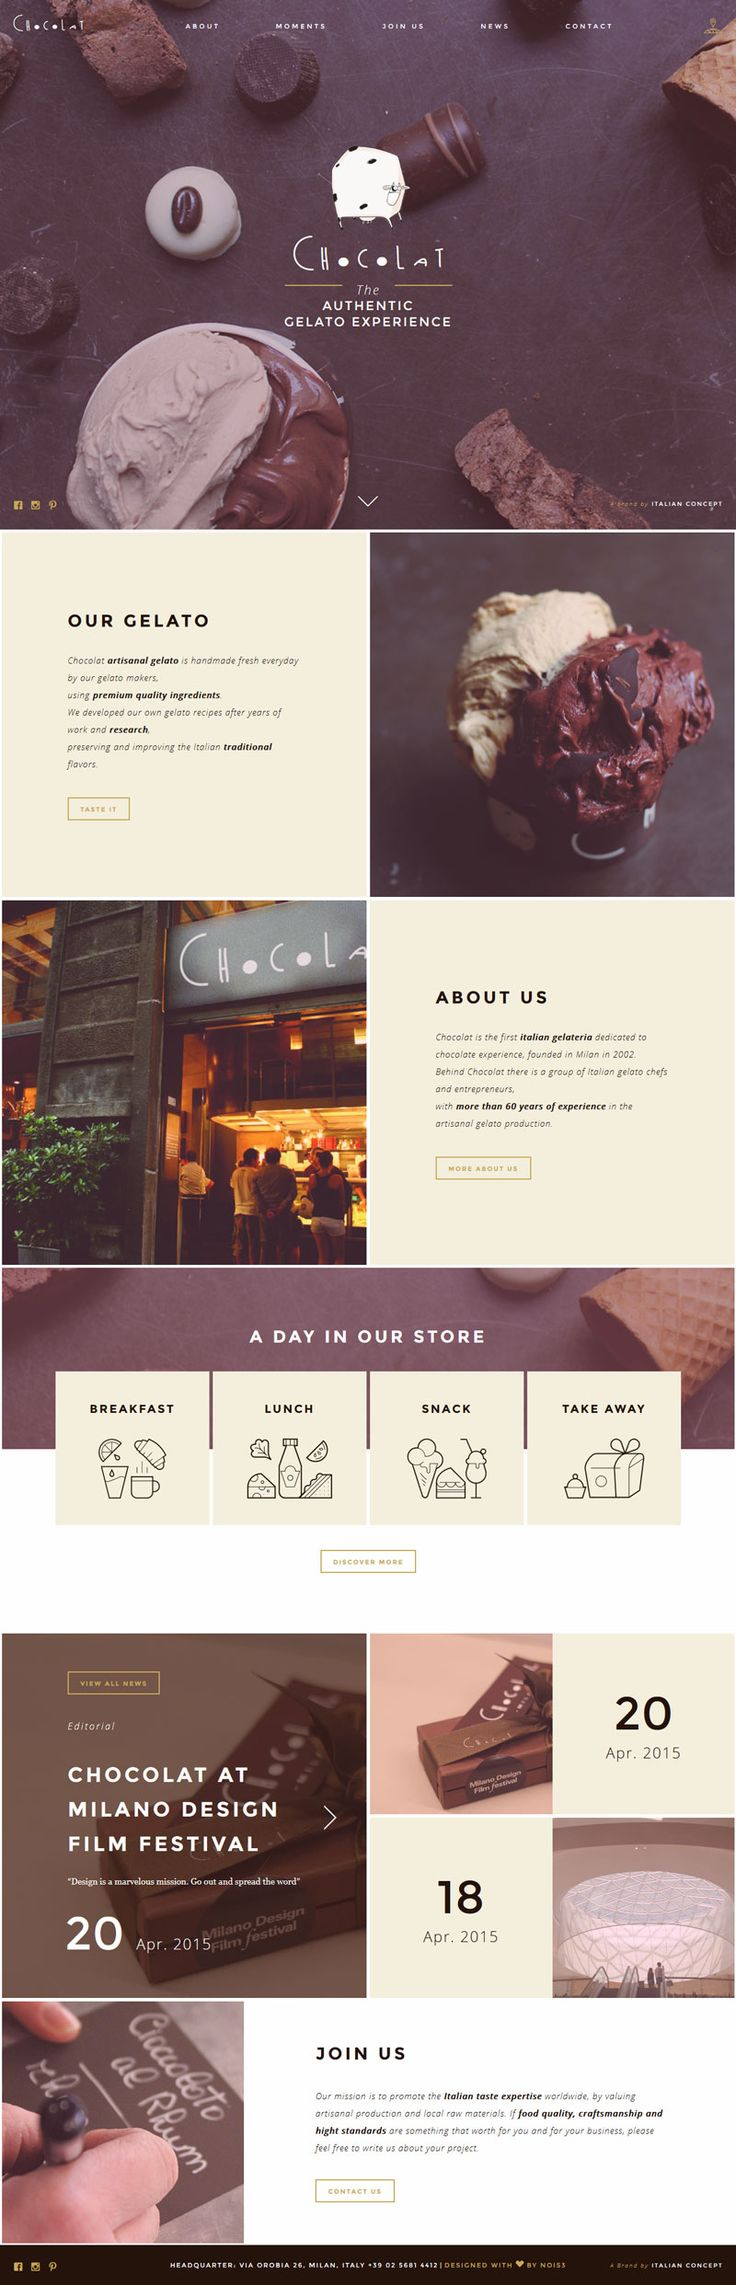 Collage inspired website with cute icons and love the photography editing and colour palette - Chocolat, creative shop design #webdesign #websitedesign